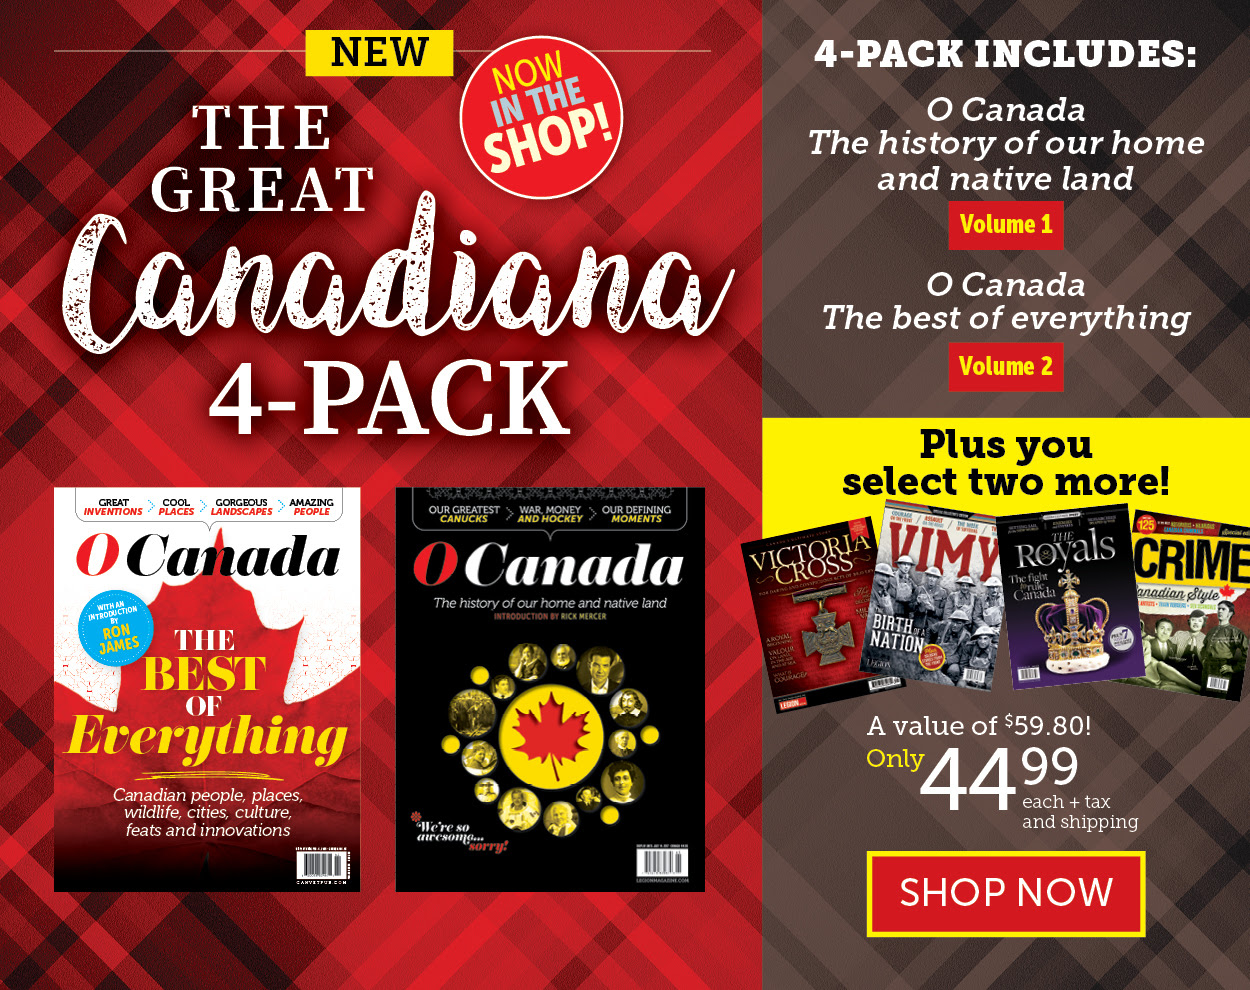 The Great Canadiana 4-Pack